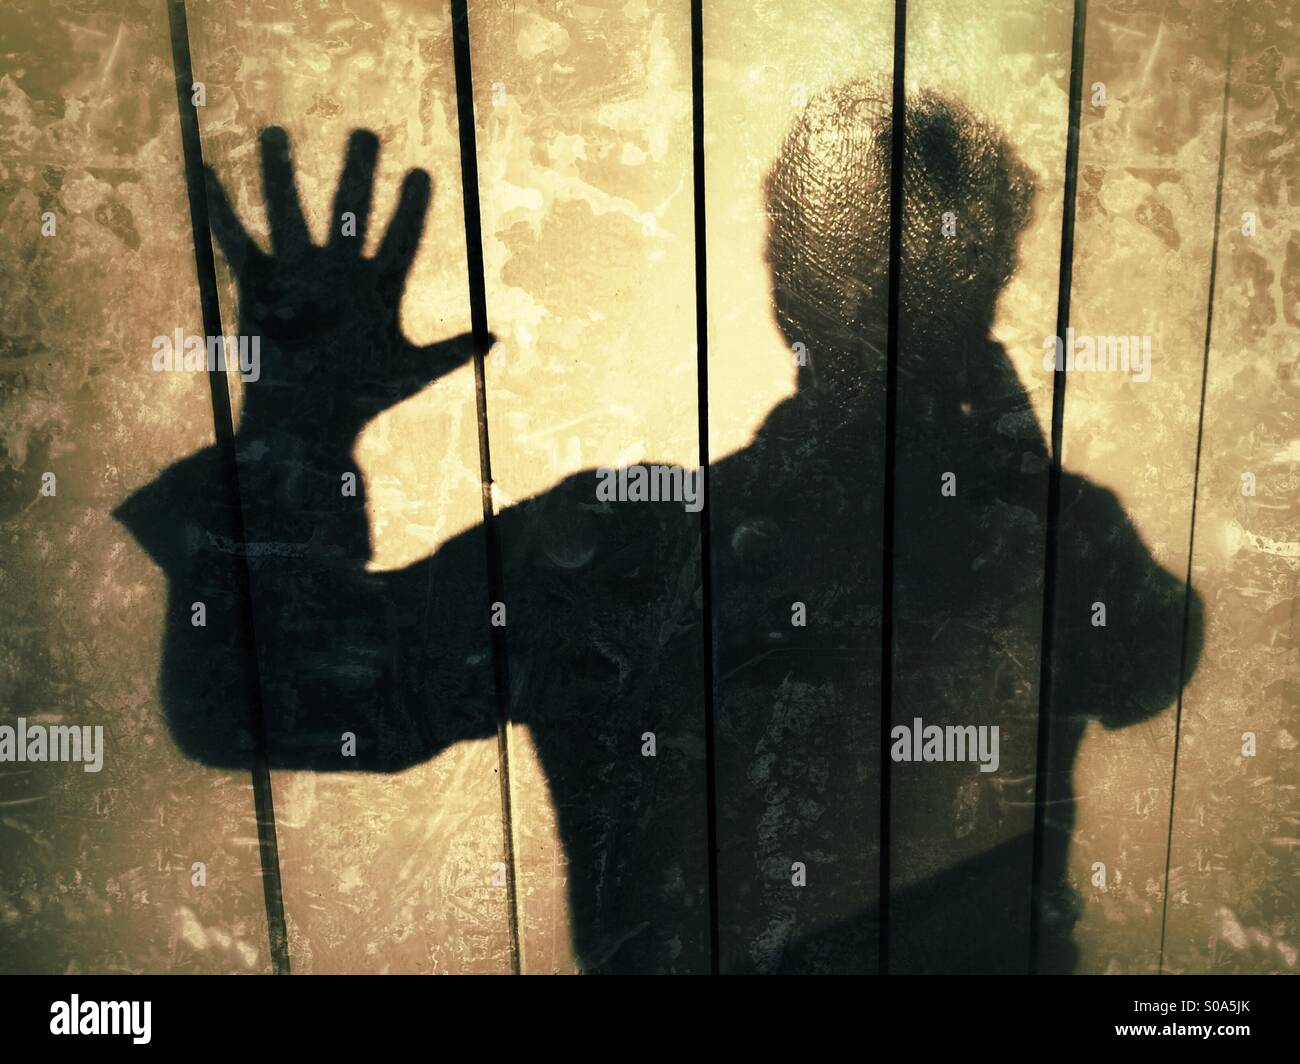 Man casting a shadow on a wall, Expressing, STOP!, no more! Stock Photo